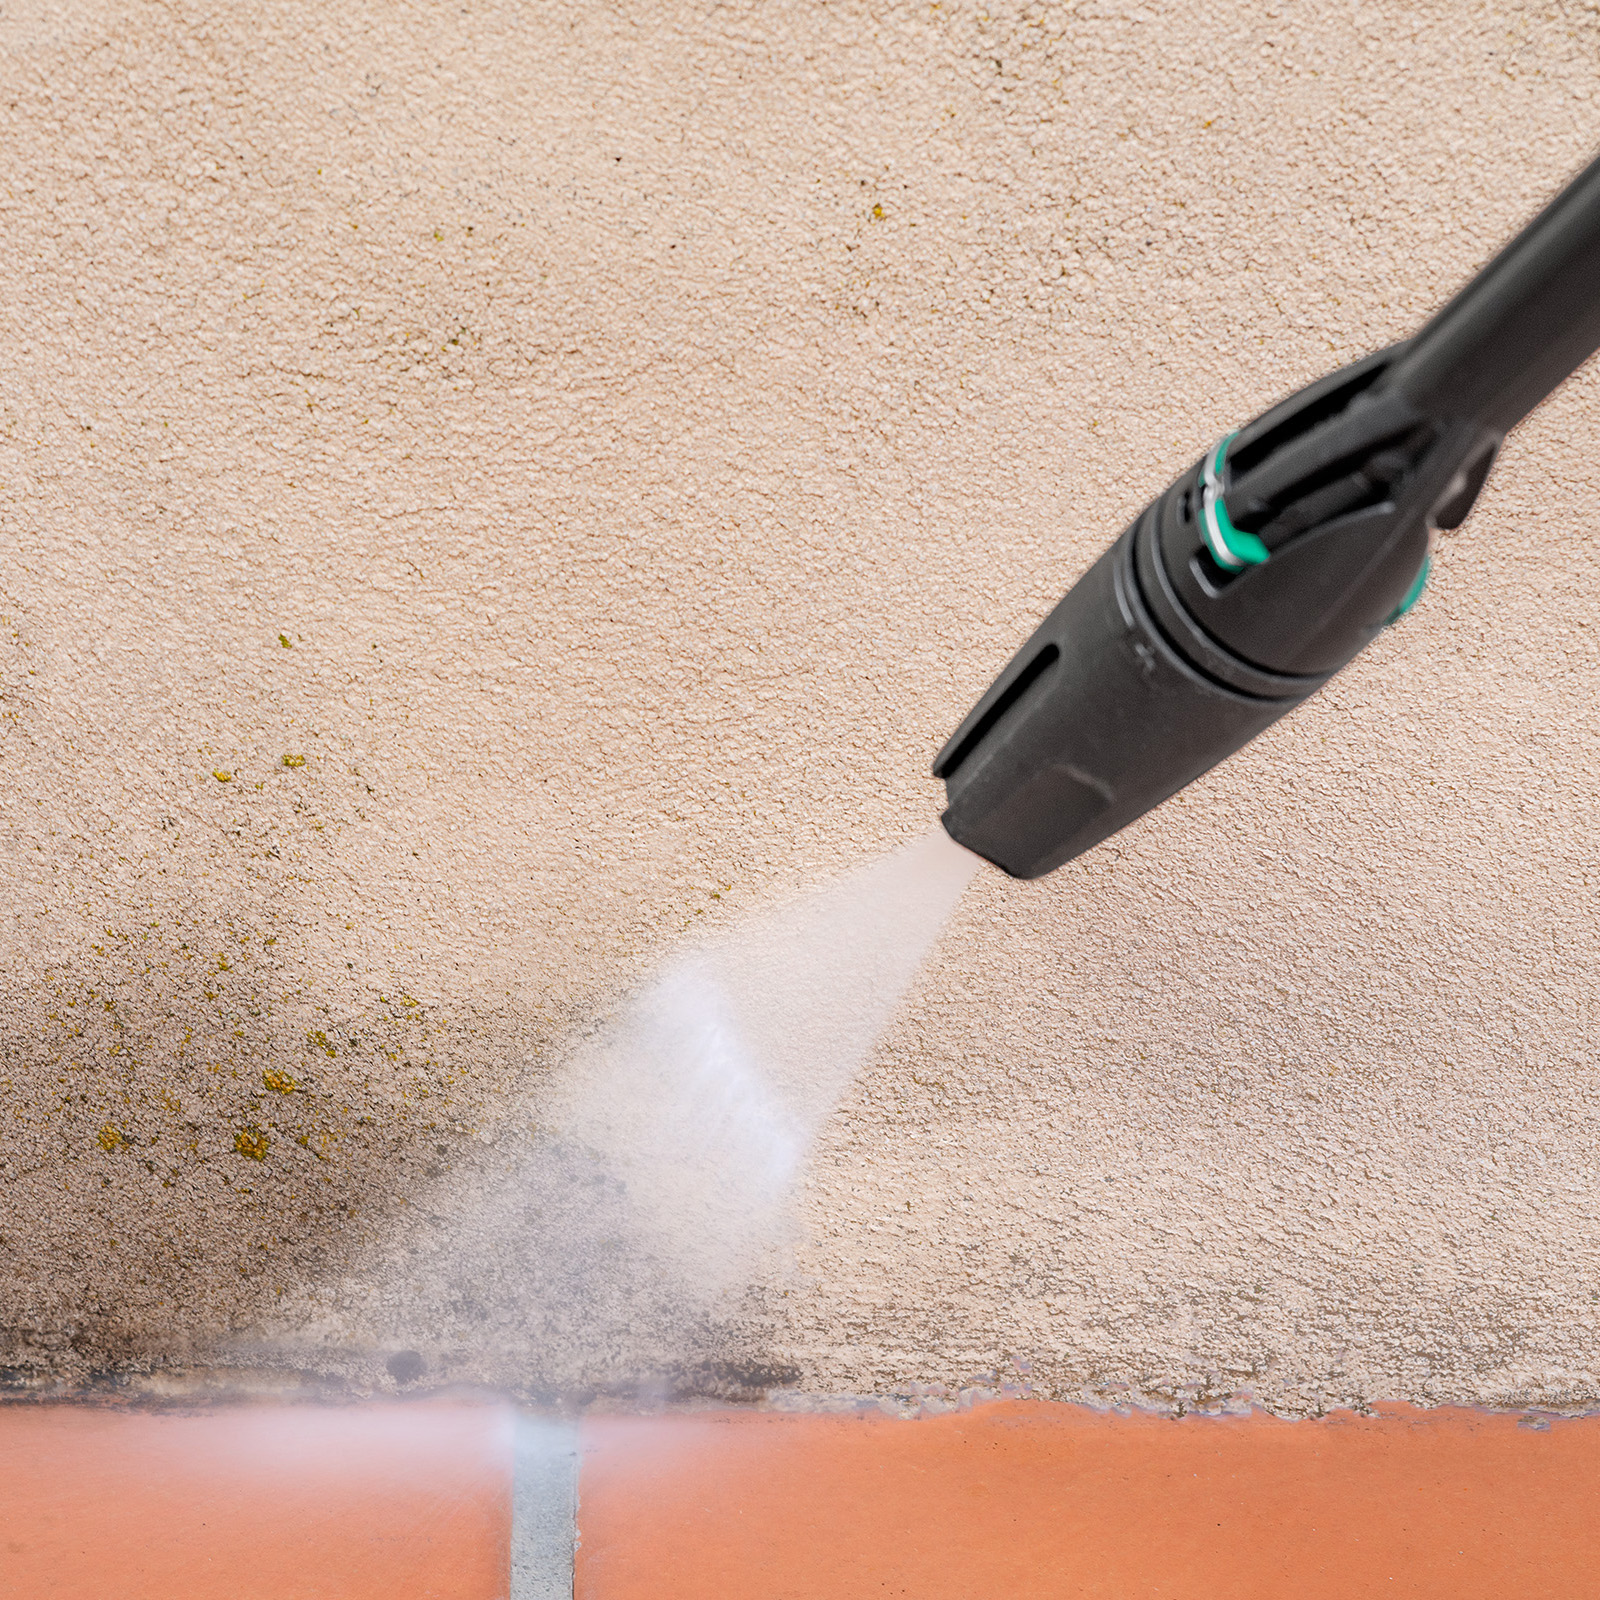 Gerni Variable Speed Nozzle - Concrete Wall Clean